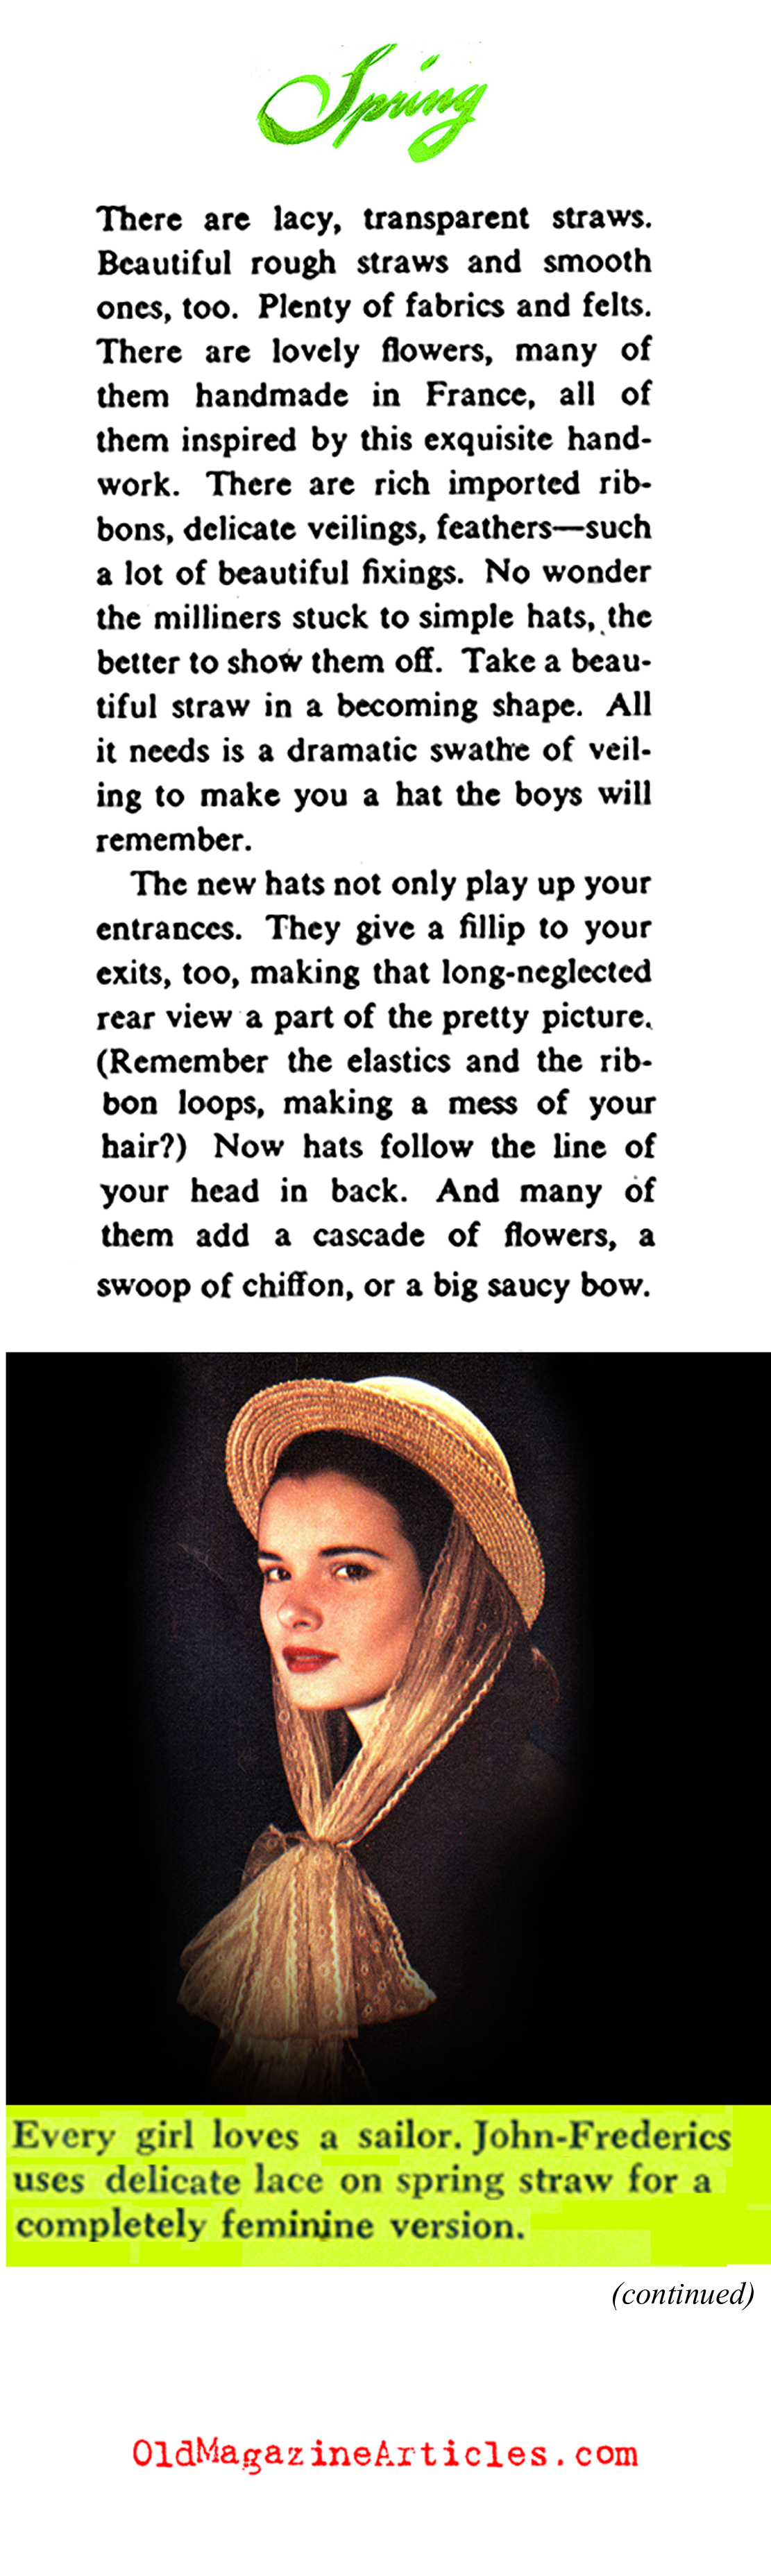 The Hats of 1947 (Collier's Magazine, 1947)